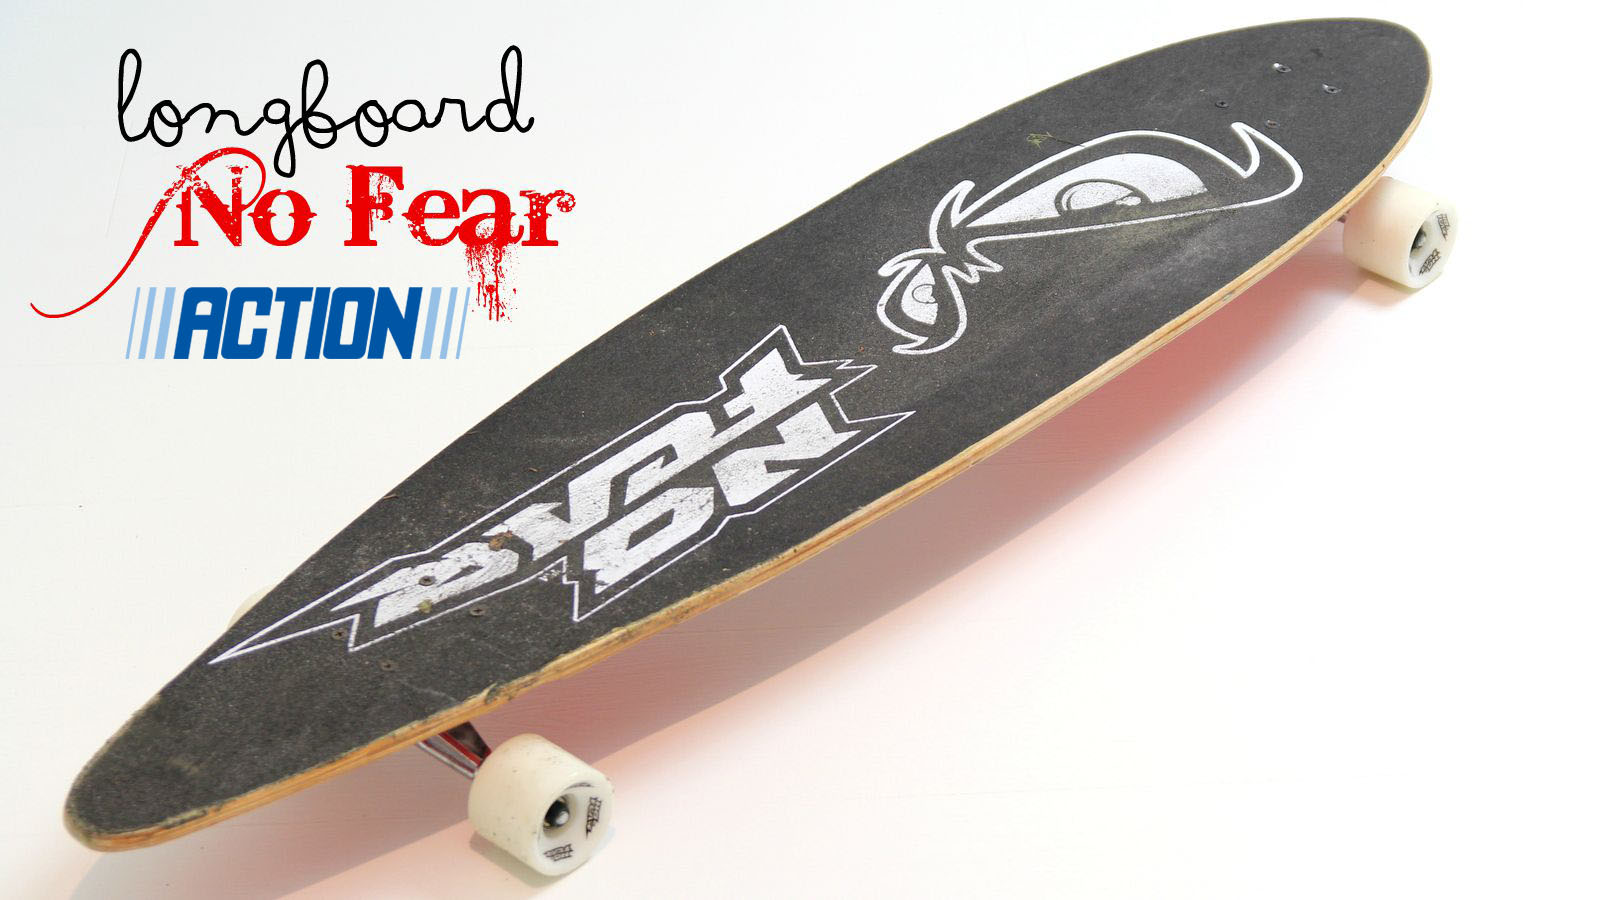 longboard no fear action review